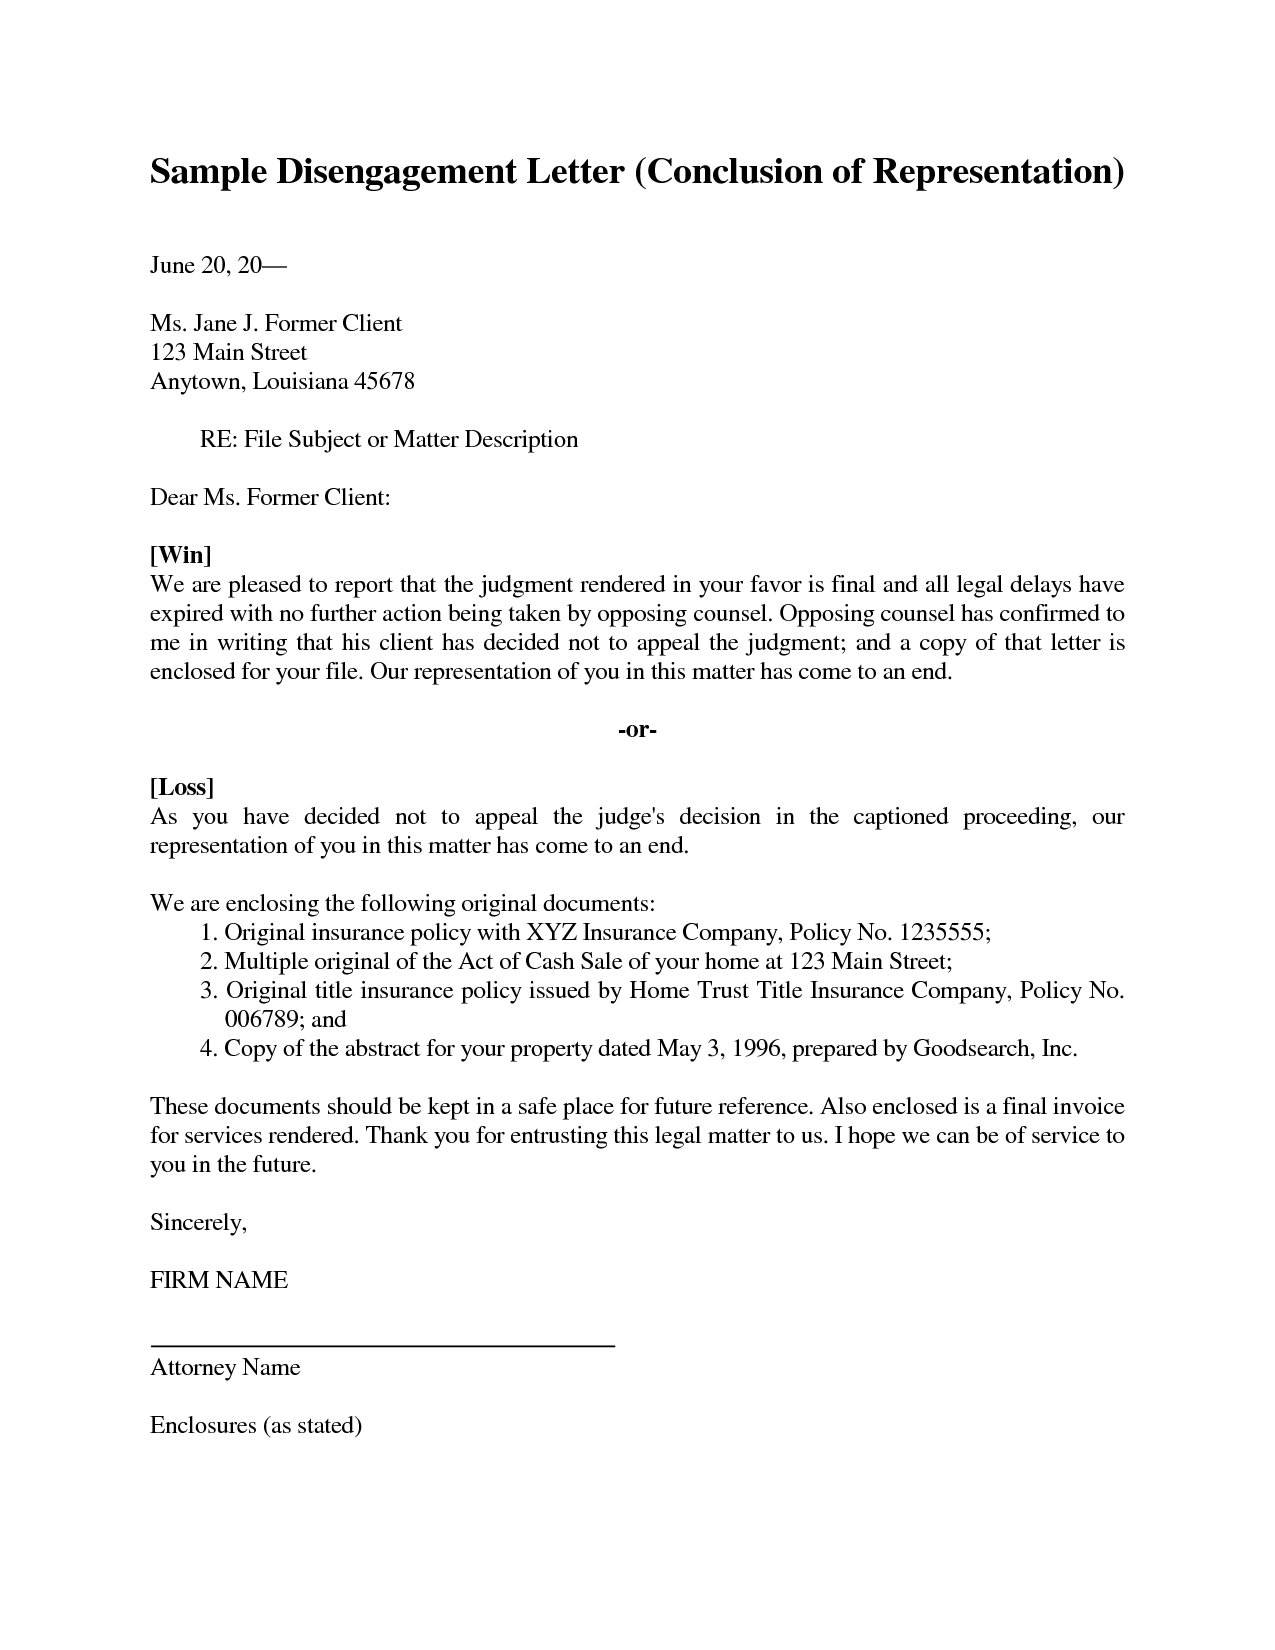 Sample legal representation letter by mlp18219 sample legal attorney authorization legal representation letter sample mlp best free home design idea inspiration madrichimfo Gallery